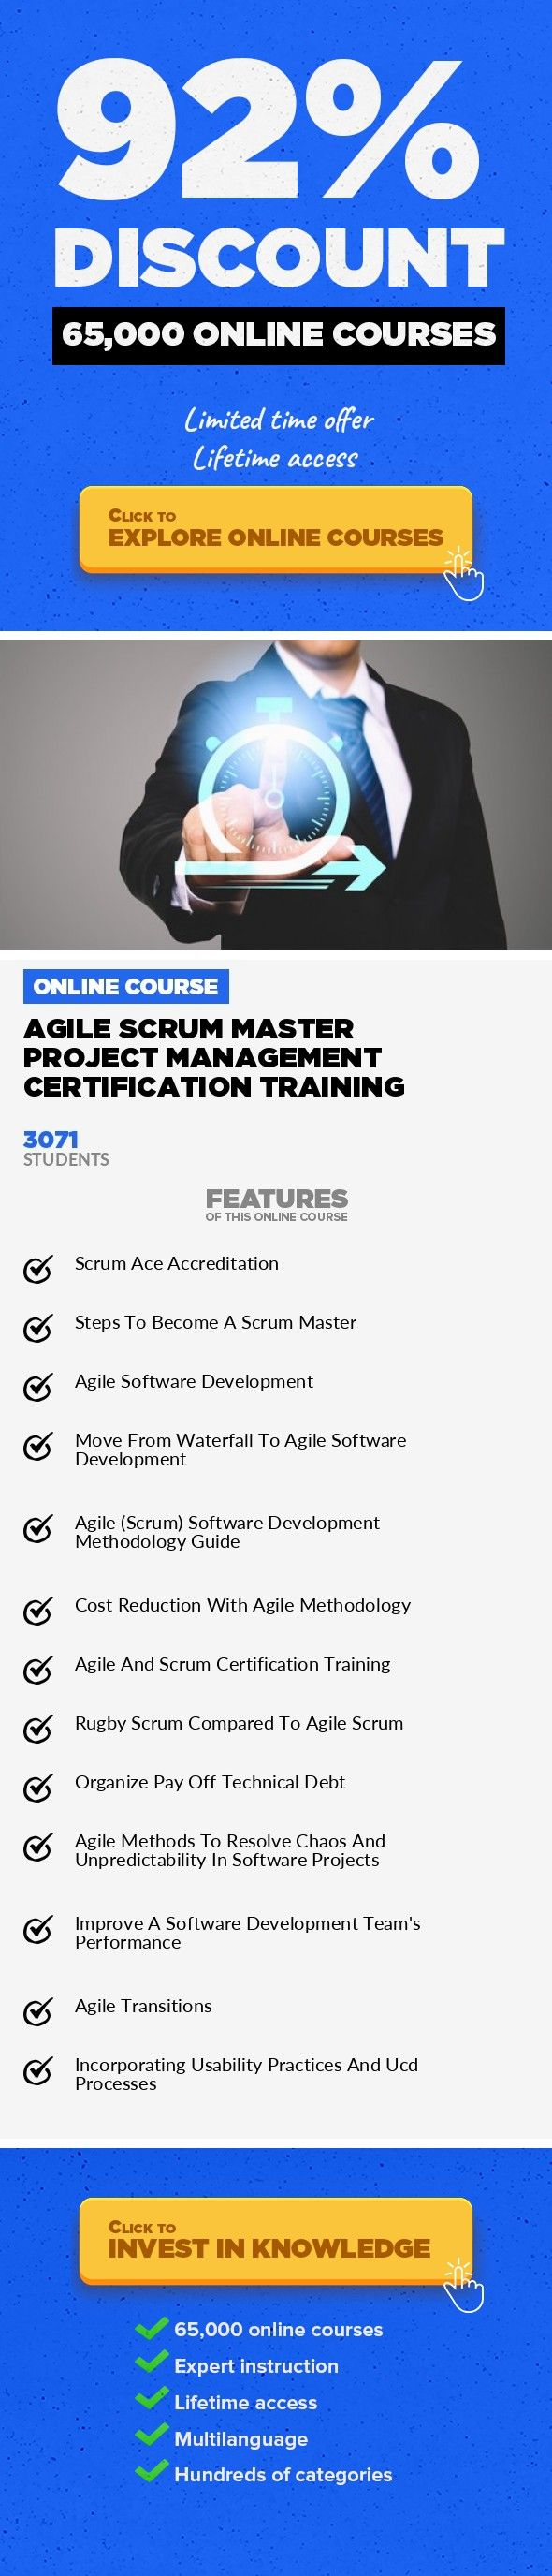 Break Through Your It Logjam With Agile A Webinar On 2nd Of June